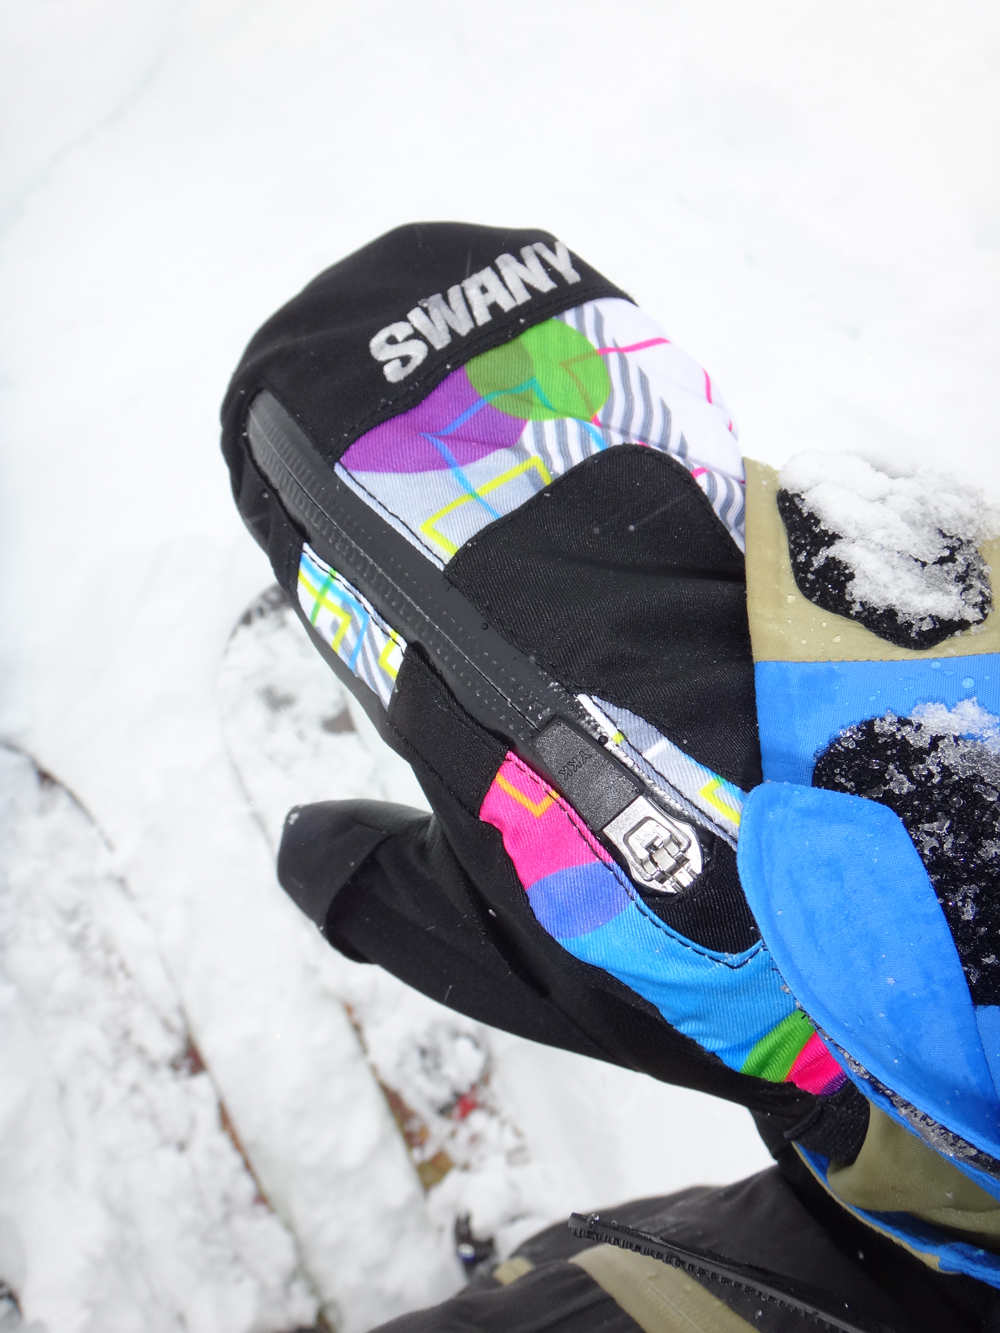 for vs toaster mitten of swany mittens gloves first photography